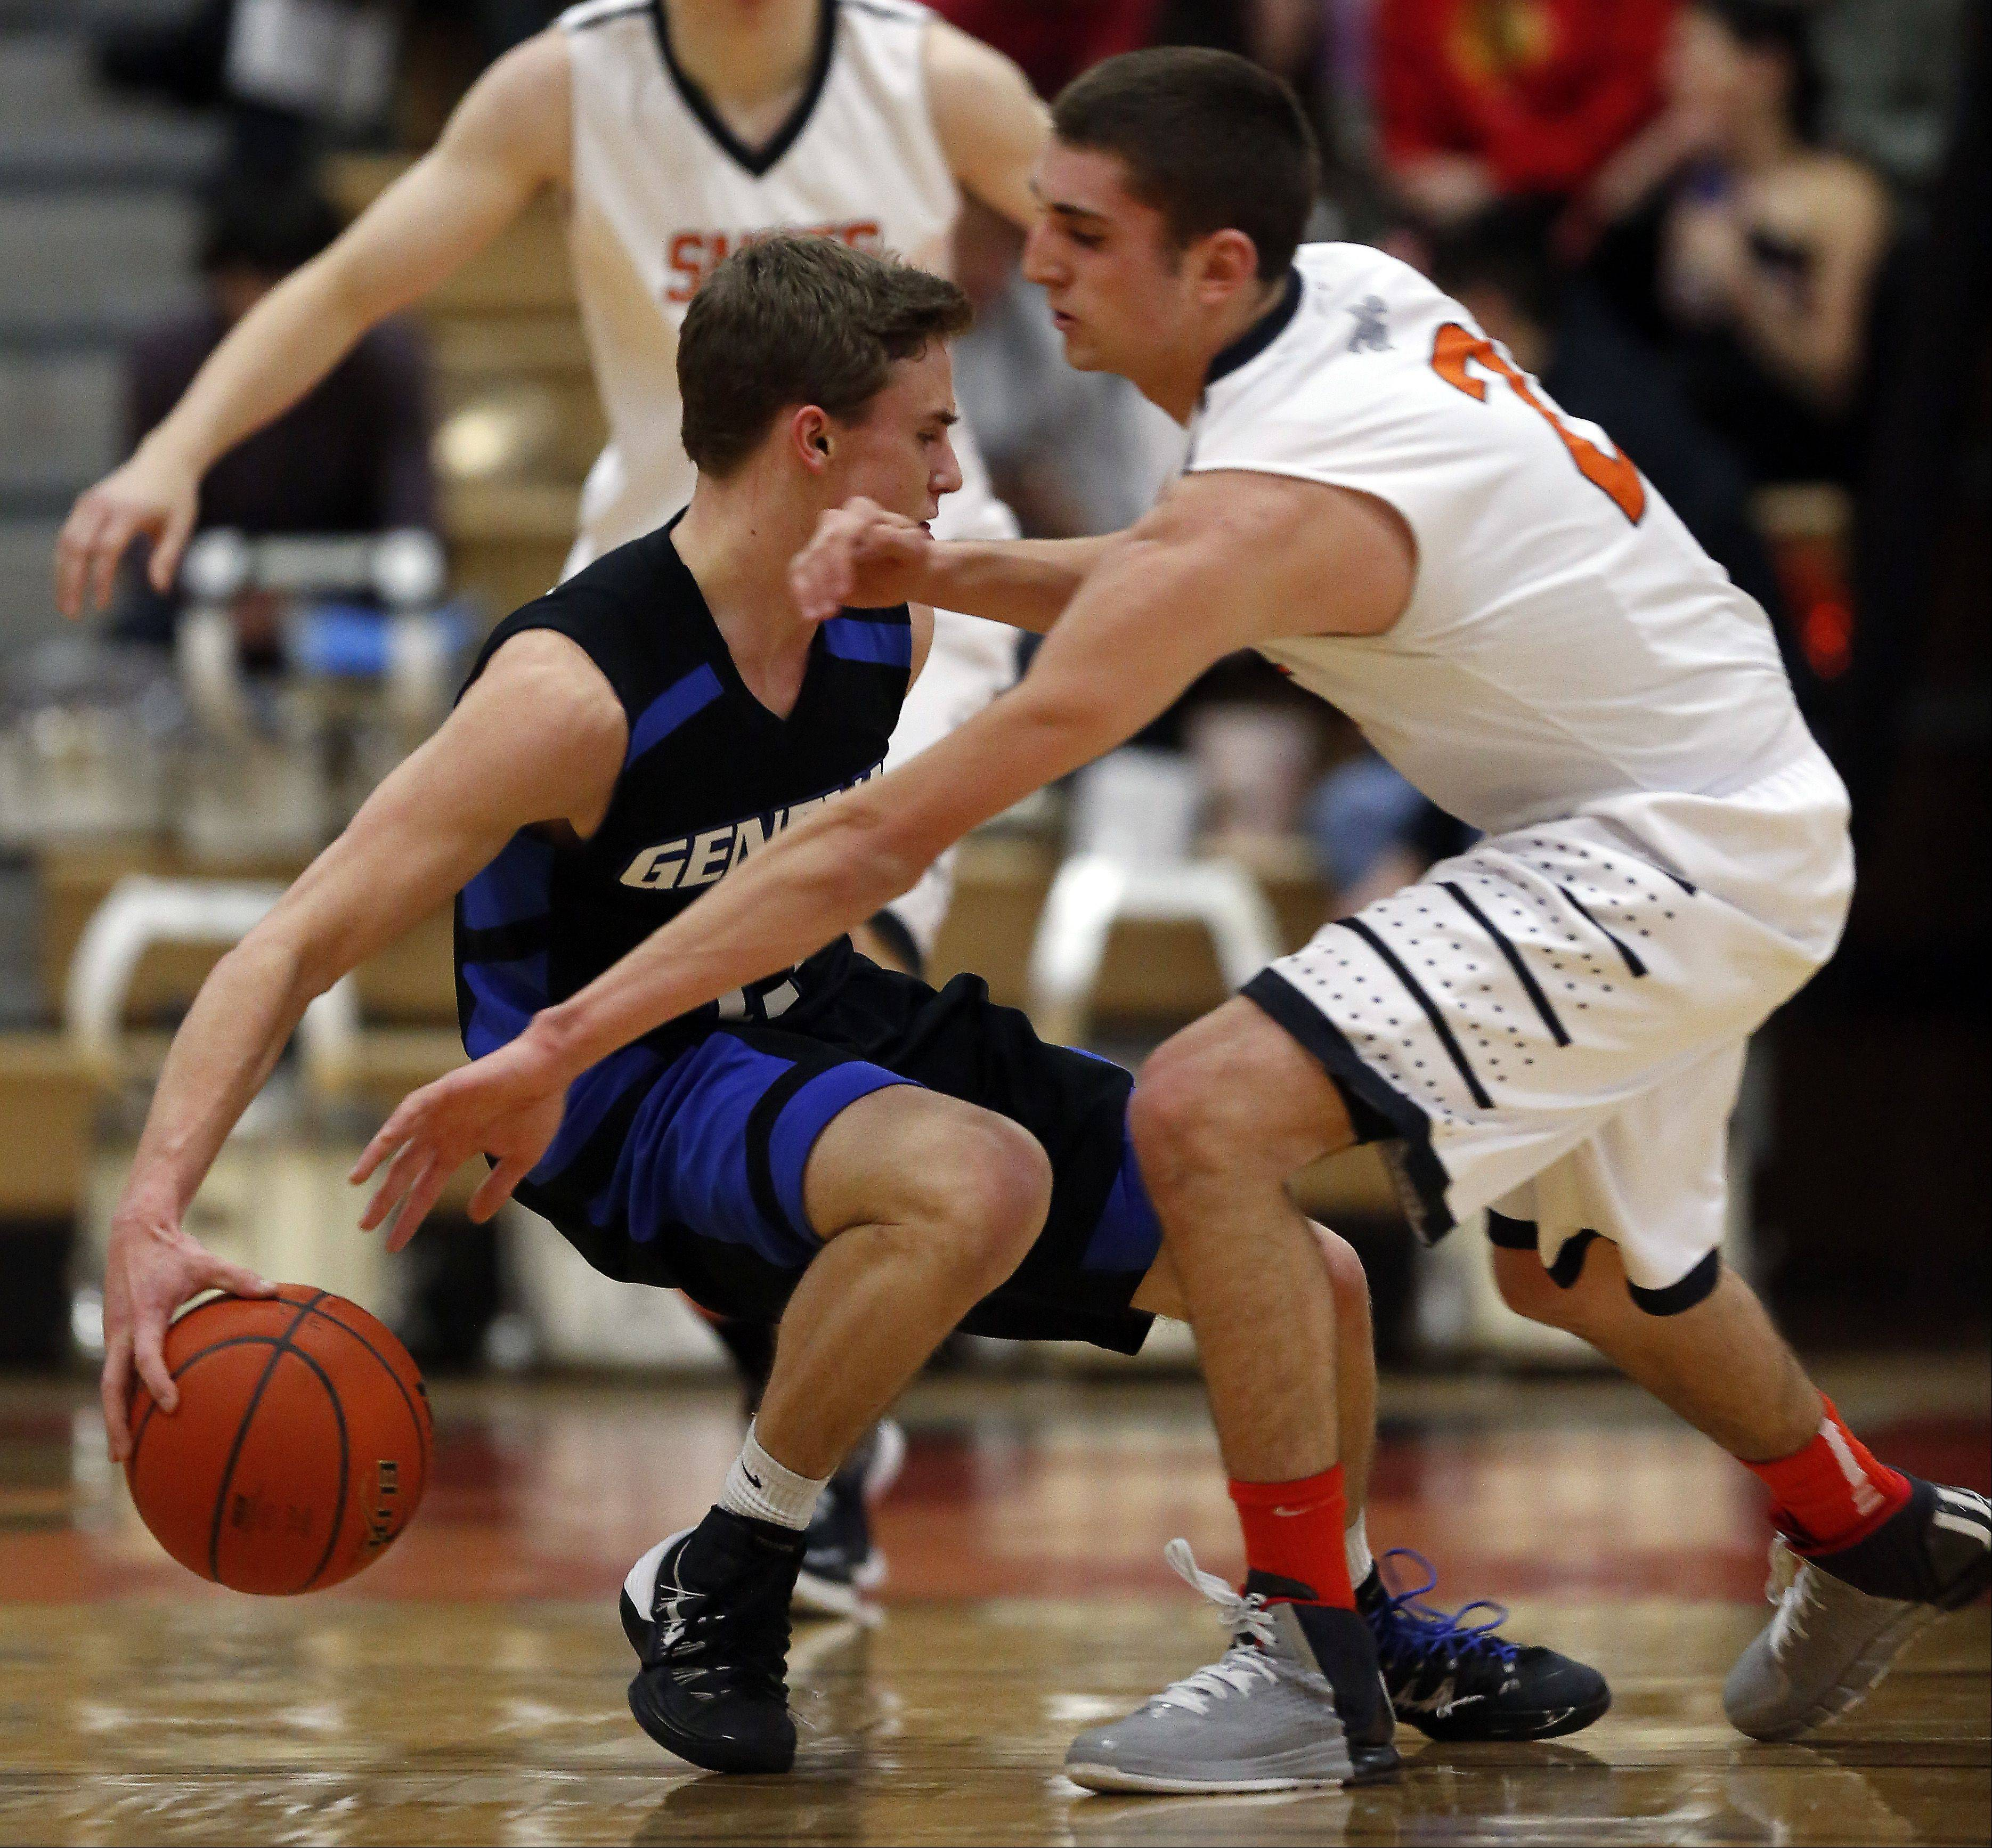 Geneva�s Cam Cook, 11, works the ball around his back and away from St. Charles East�s Dom Adduci, 2, during boys Basketball Saturday.